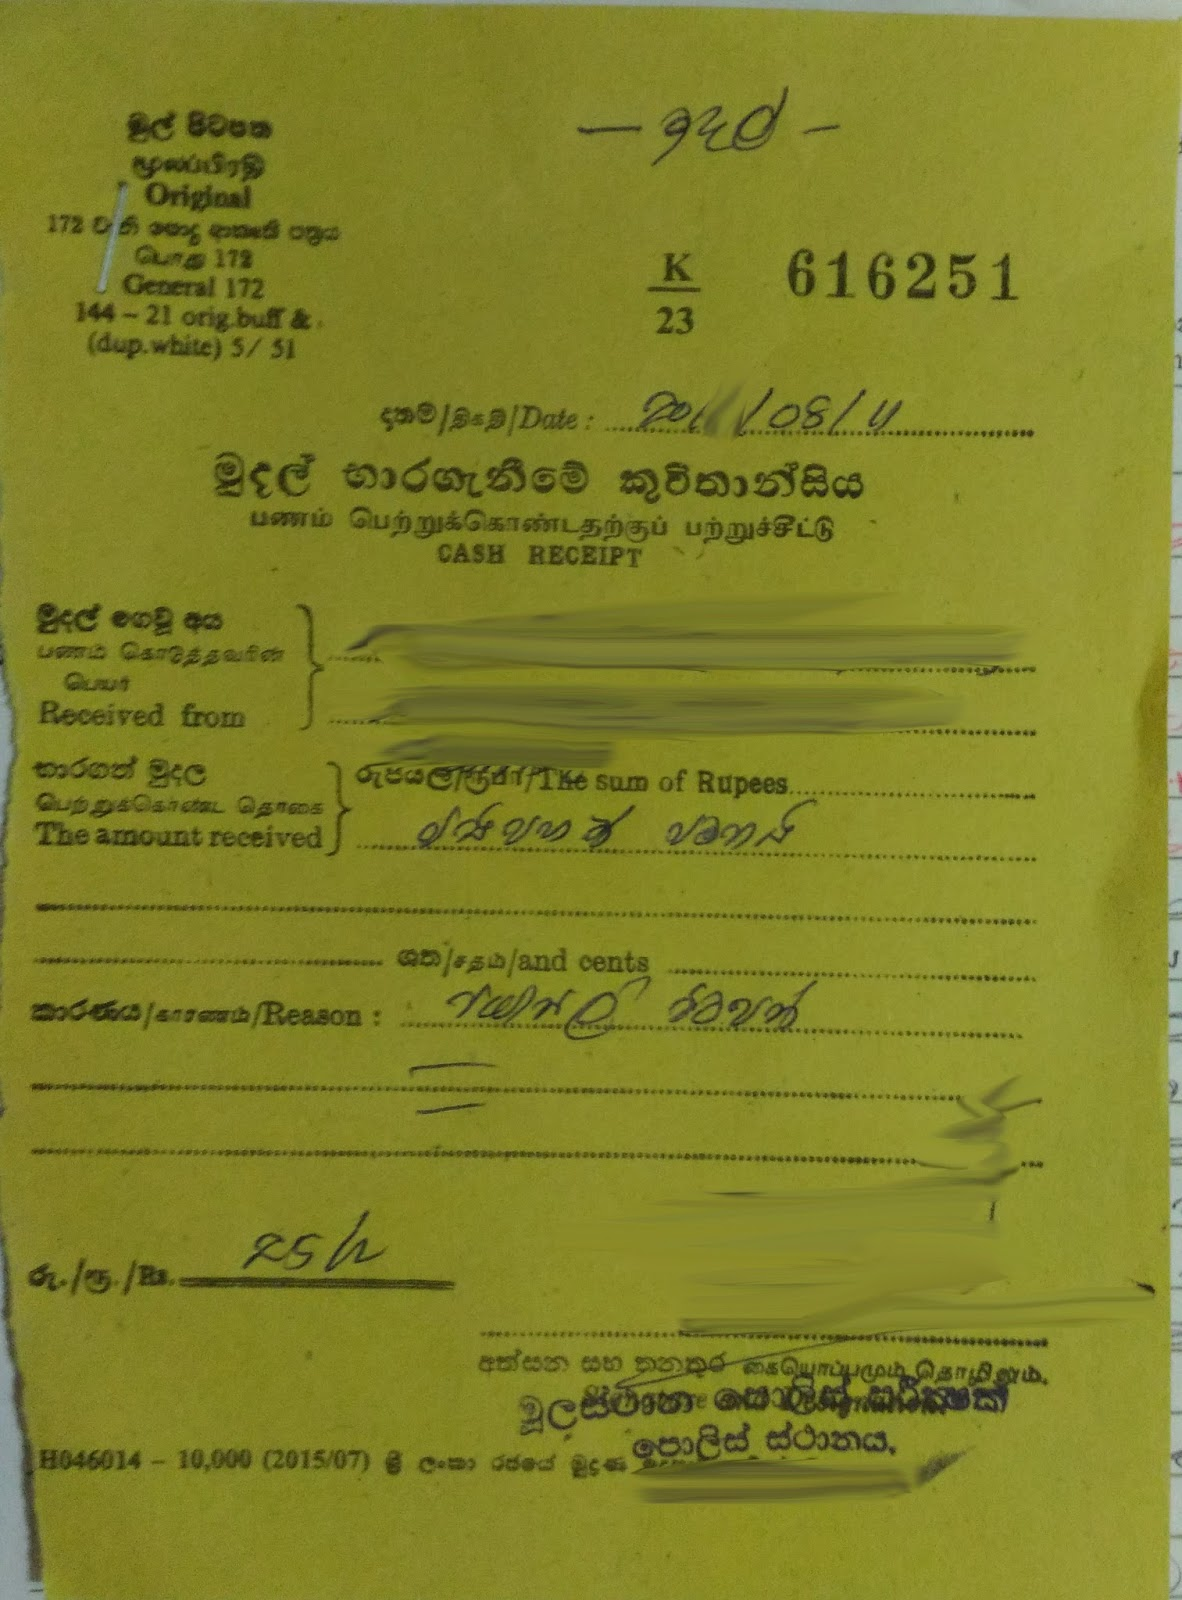 Sri lanka birth certificate sample images certificate design and how to get a new sri lankan nic for a lost nic amazing life xflitez Image collections